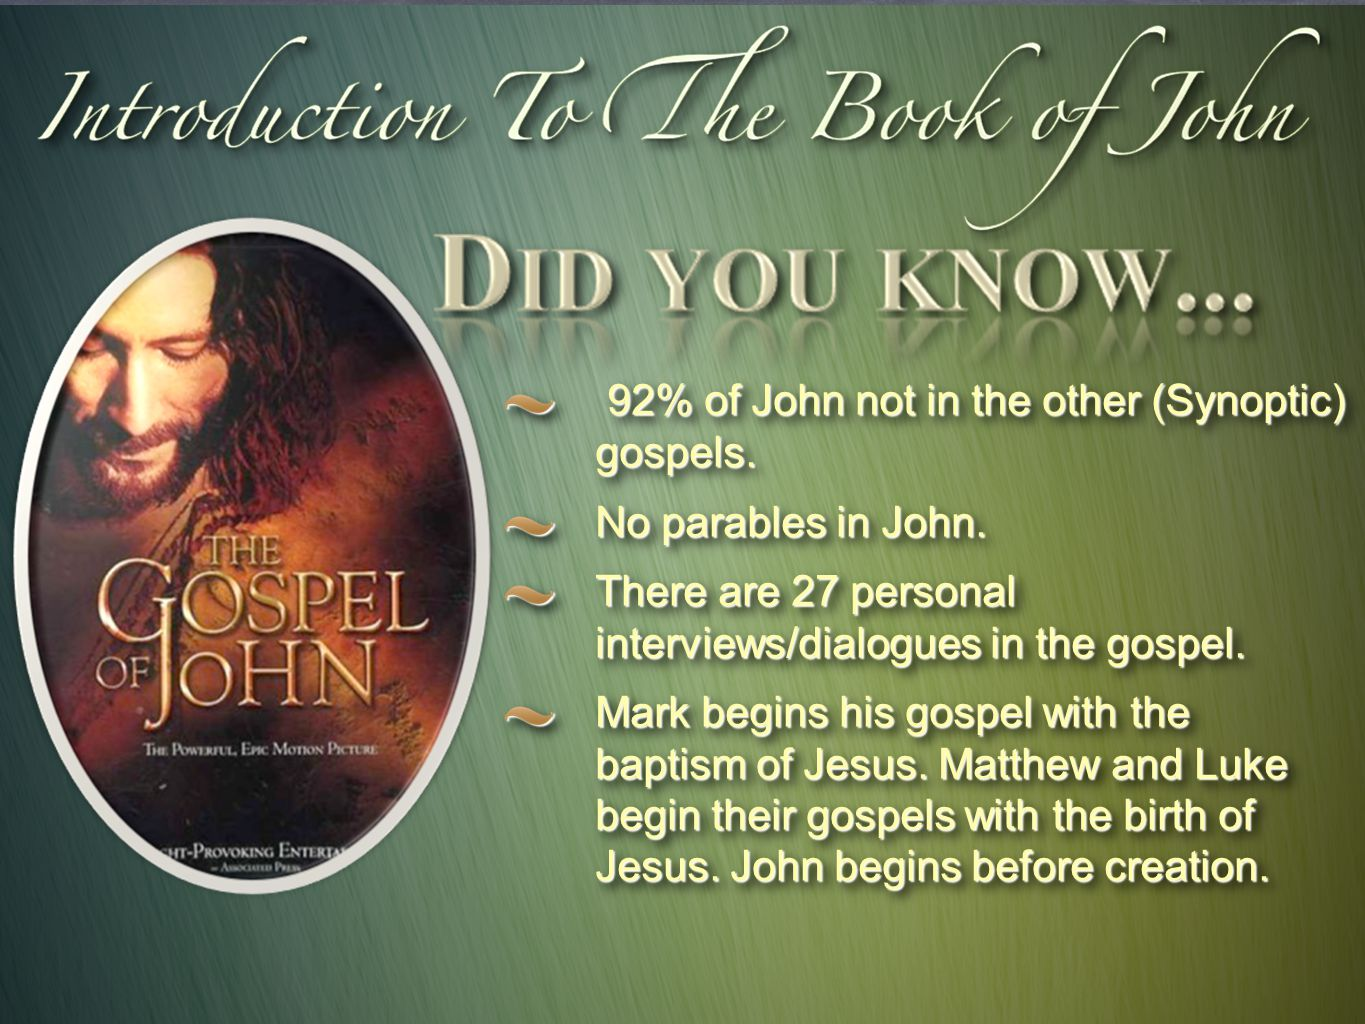 92% of John not in the other (Synoptic) gospels. 92% of John not in the other (Synoptic) gospels.